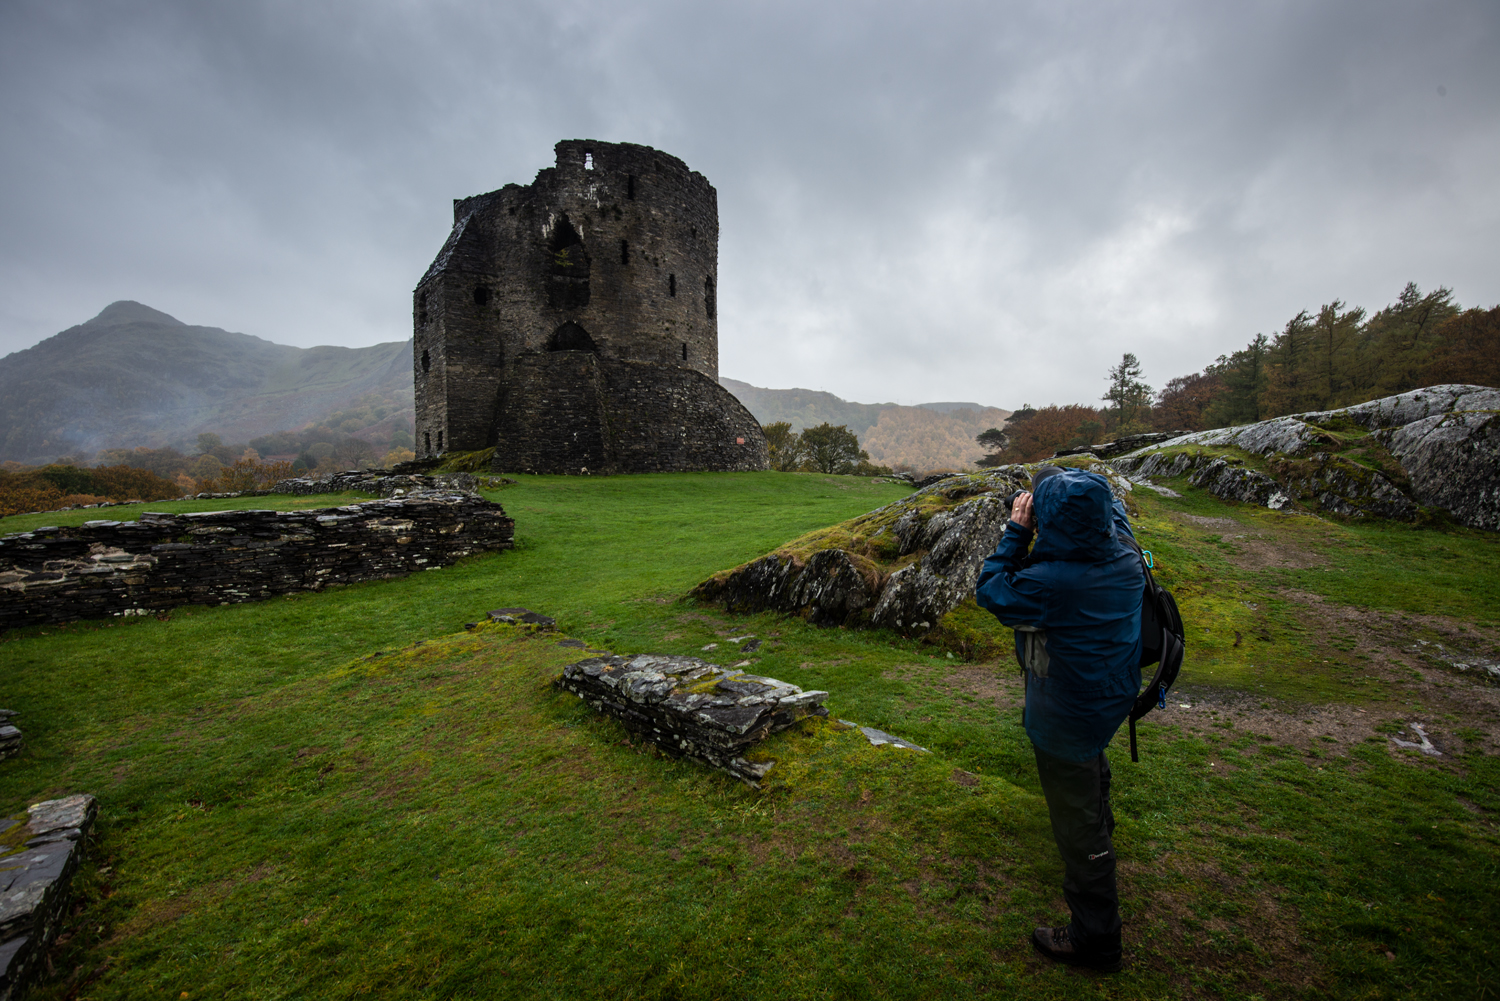 Llanberis Castle. Photography Workshop with Nigel Forster